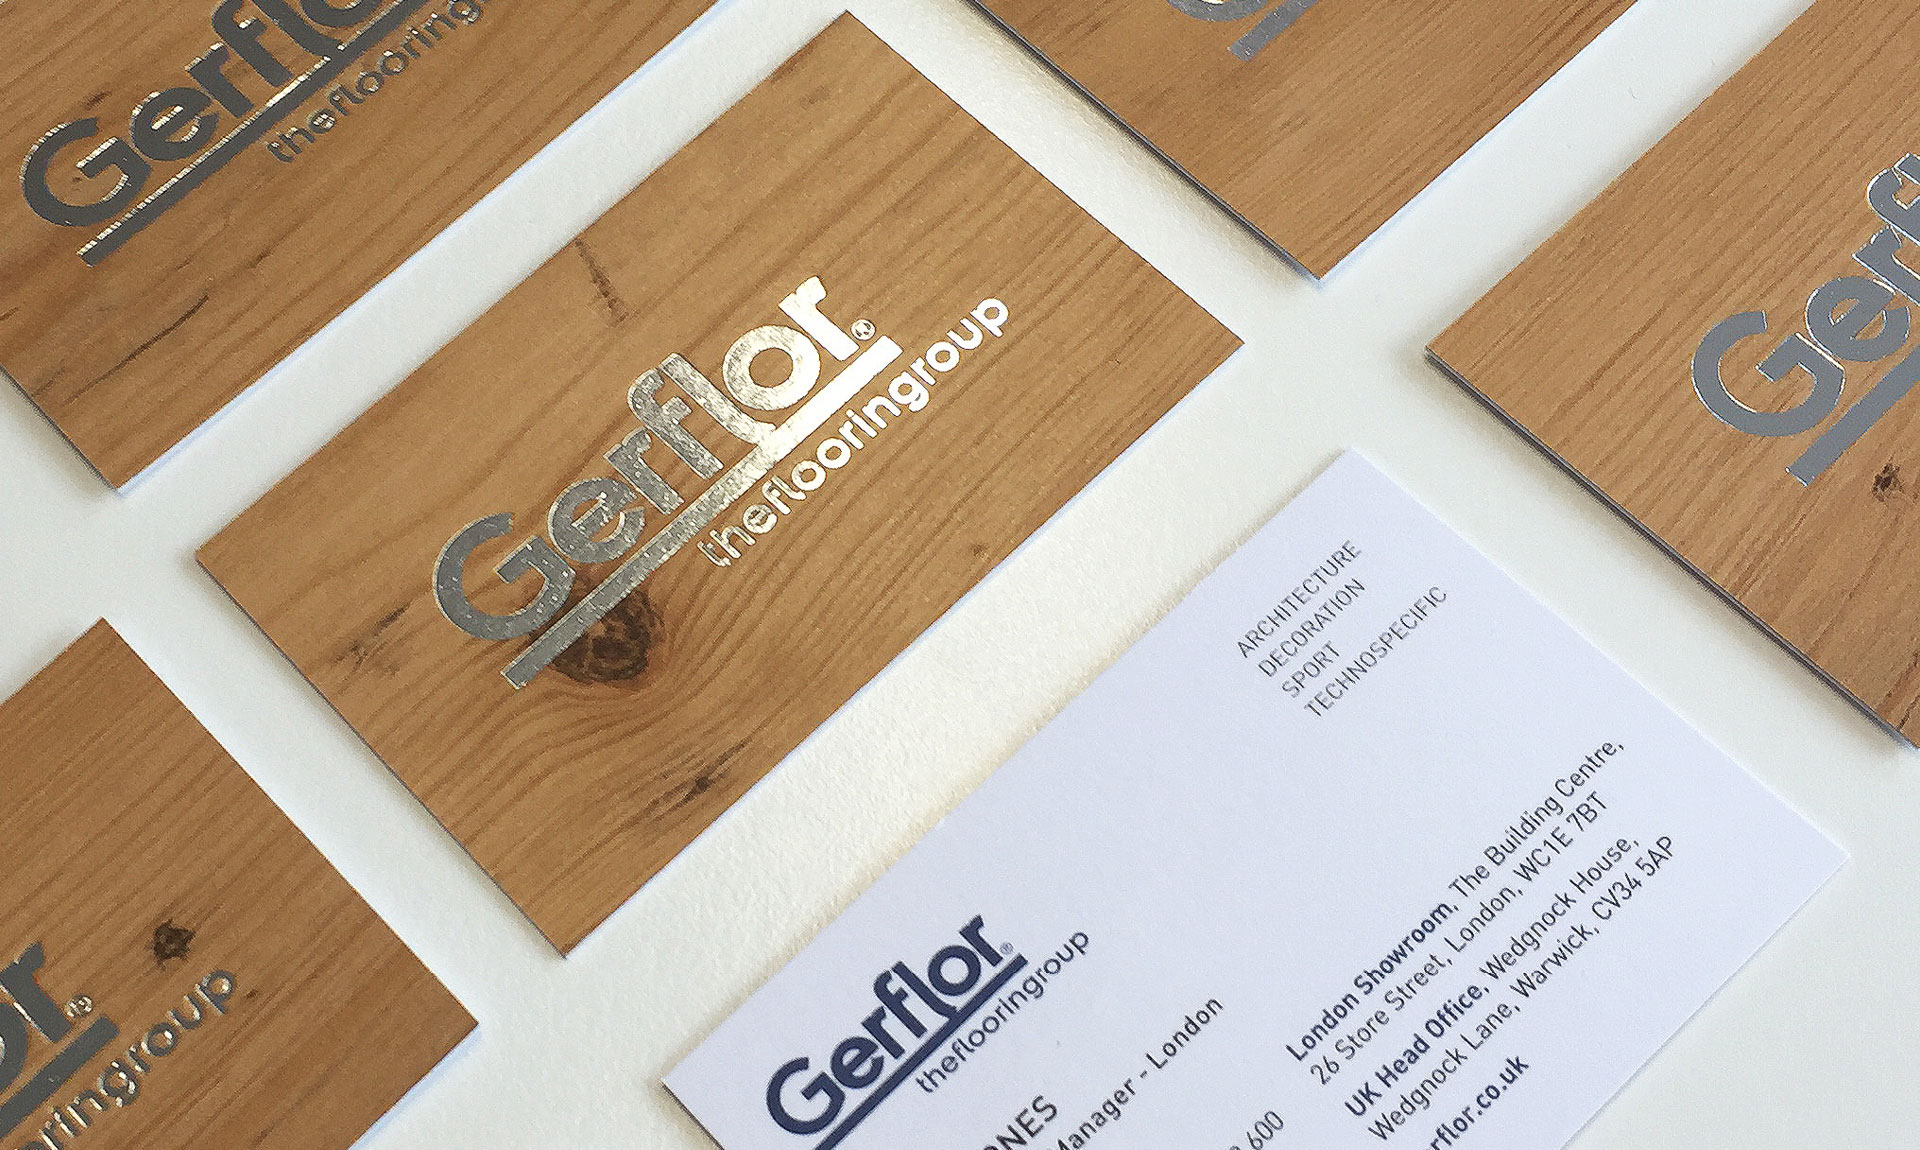 Gerflor - Business Card Cover